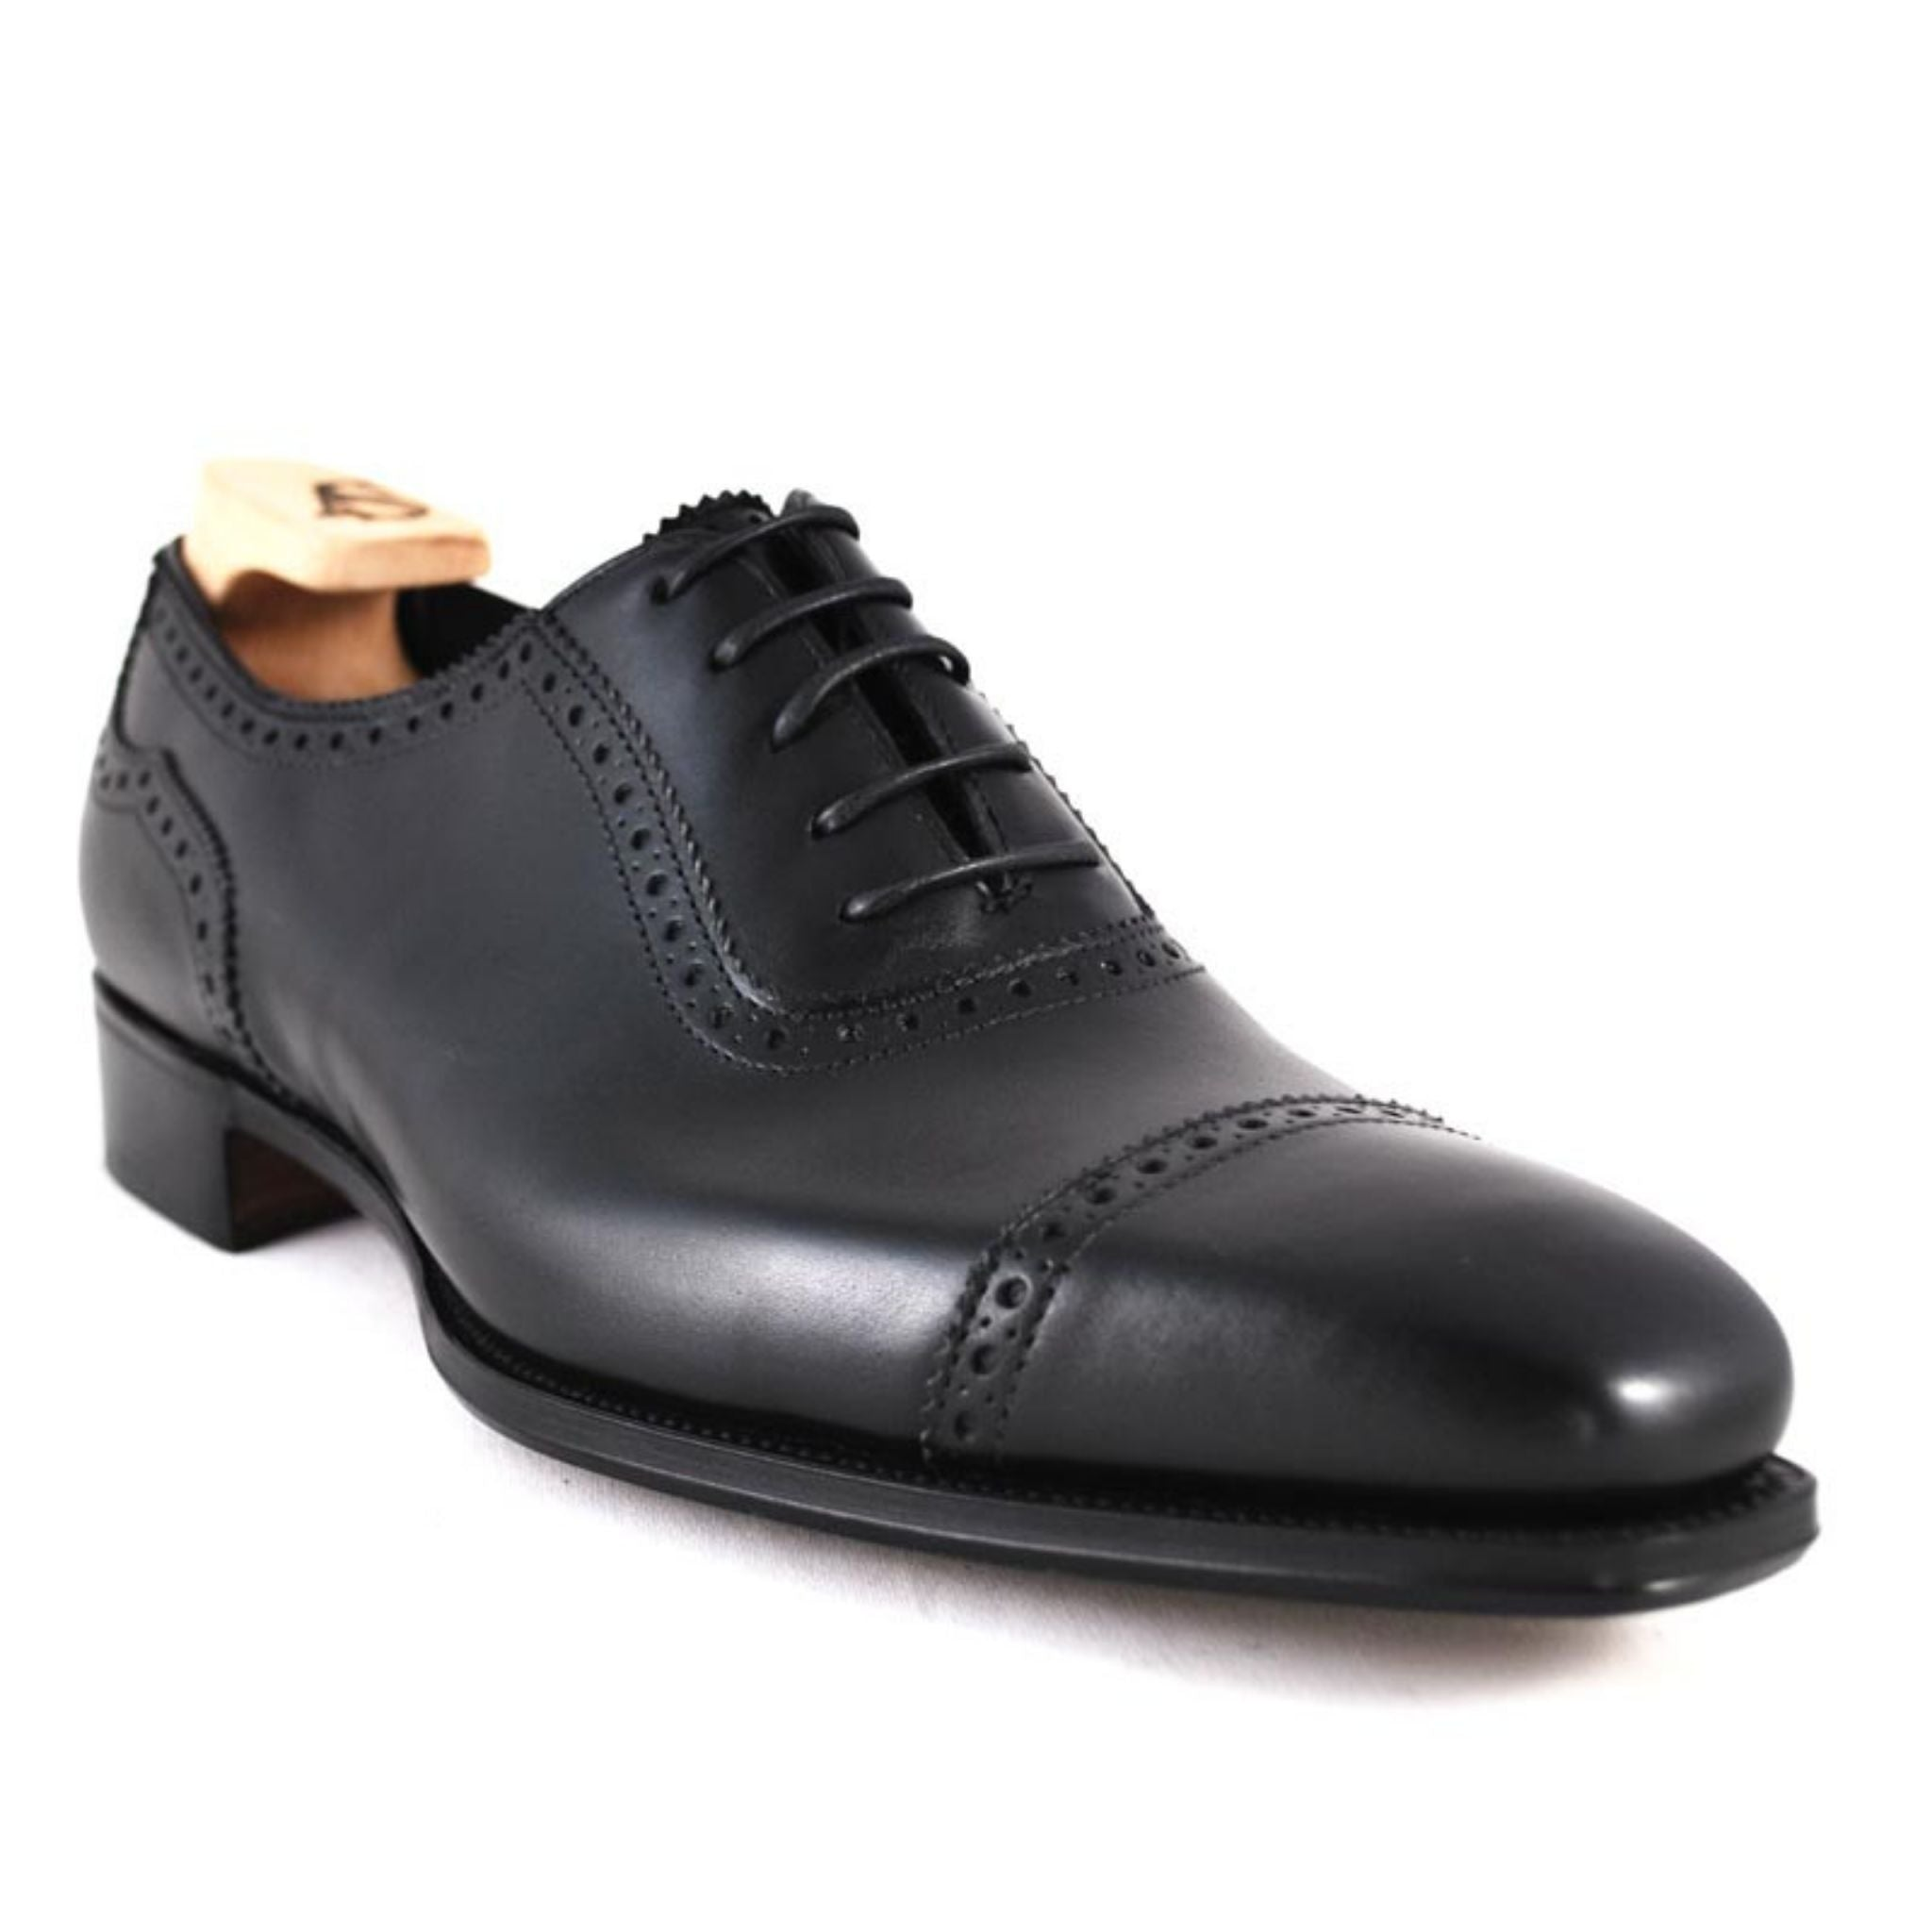 Black cap toe oxfords - Alfred Sargent Moore